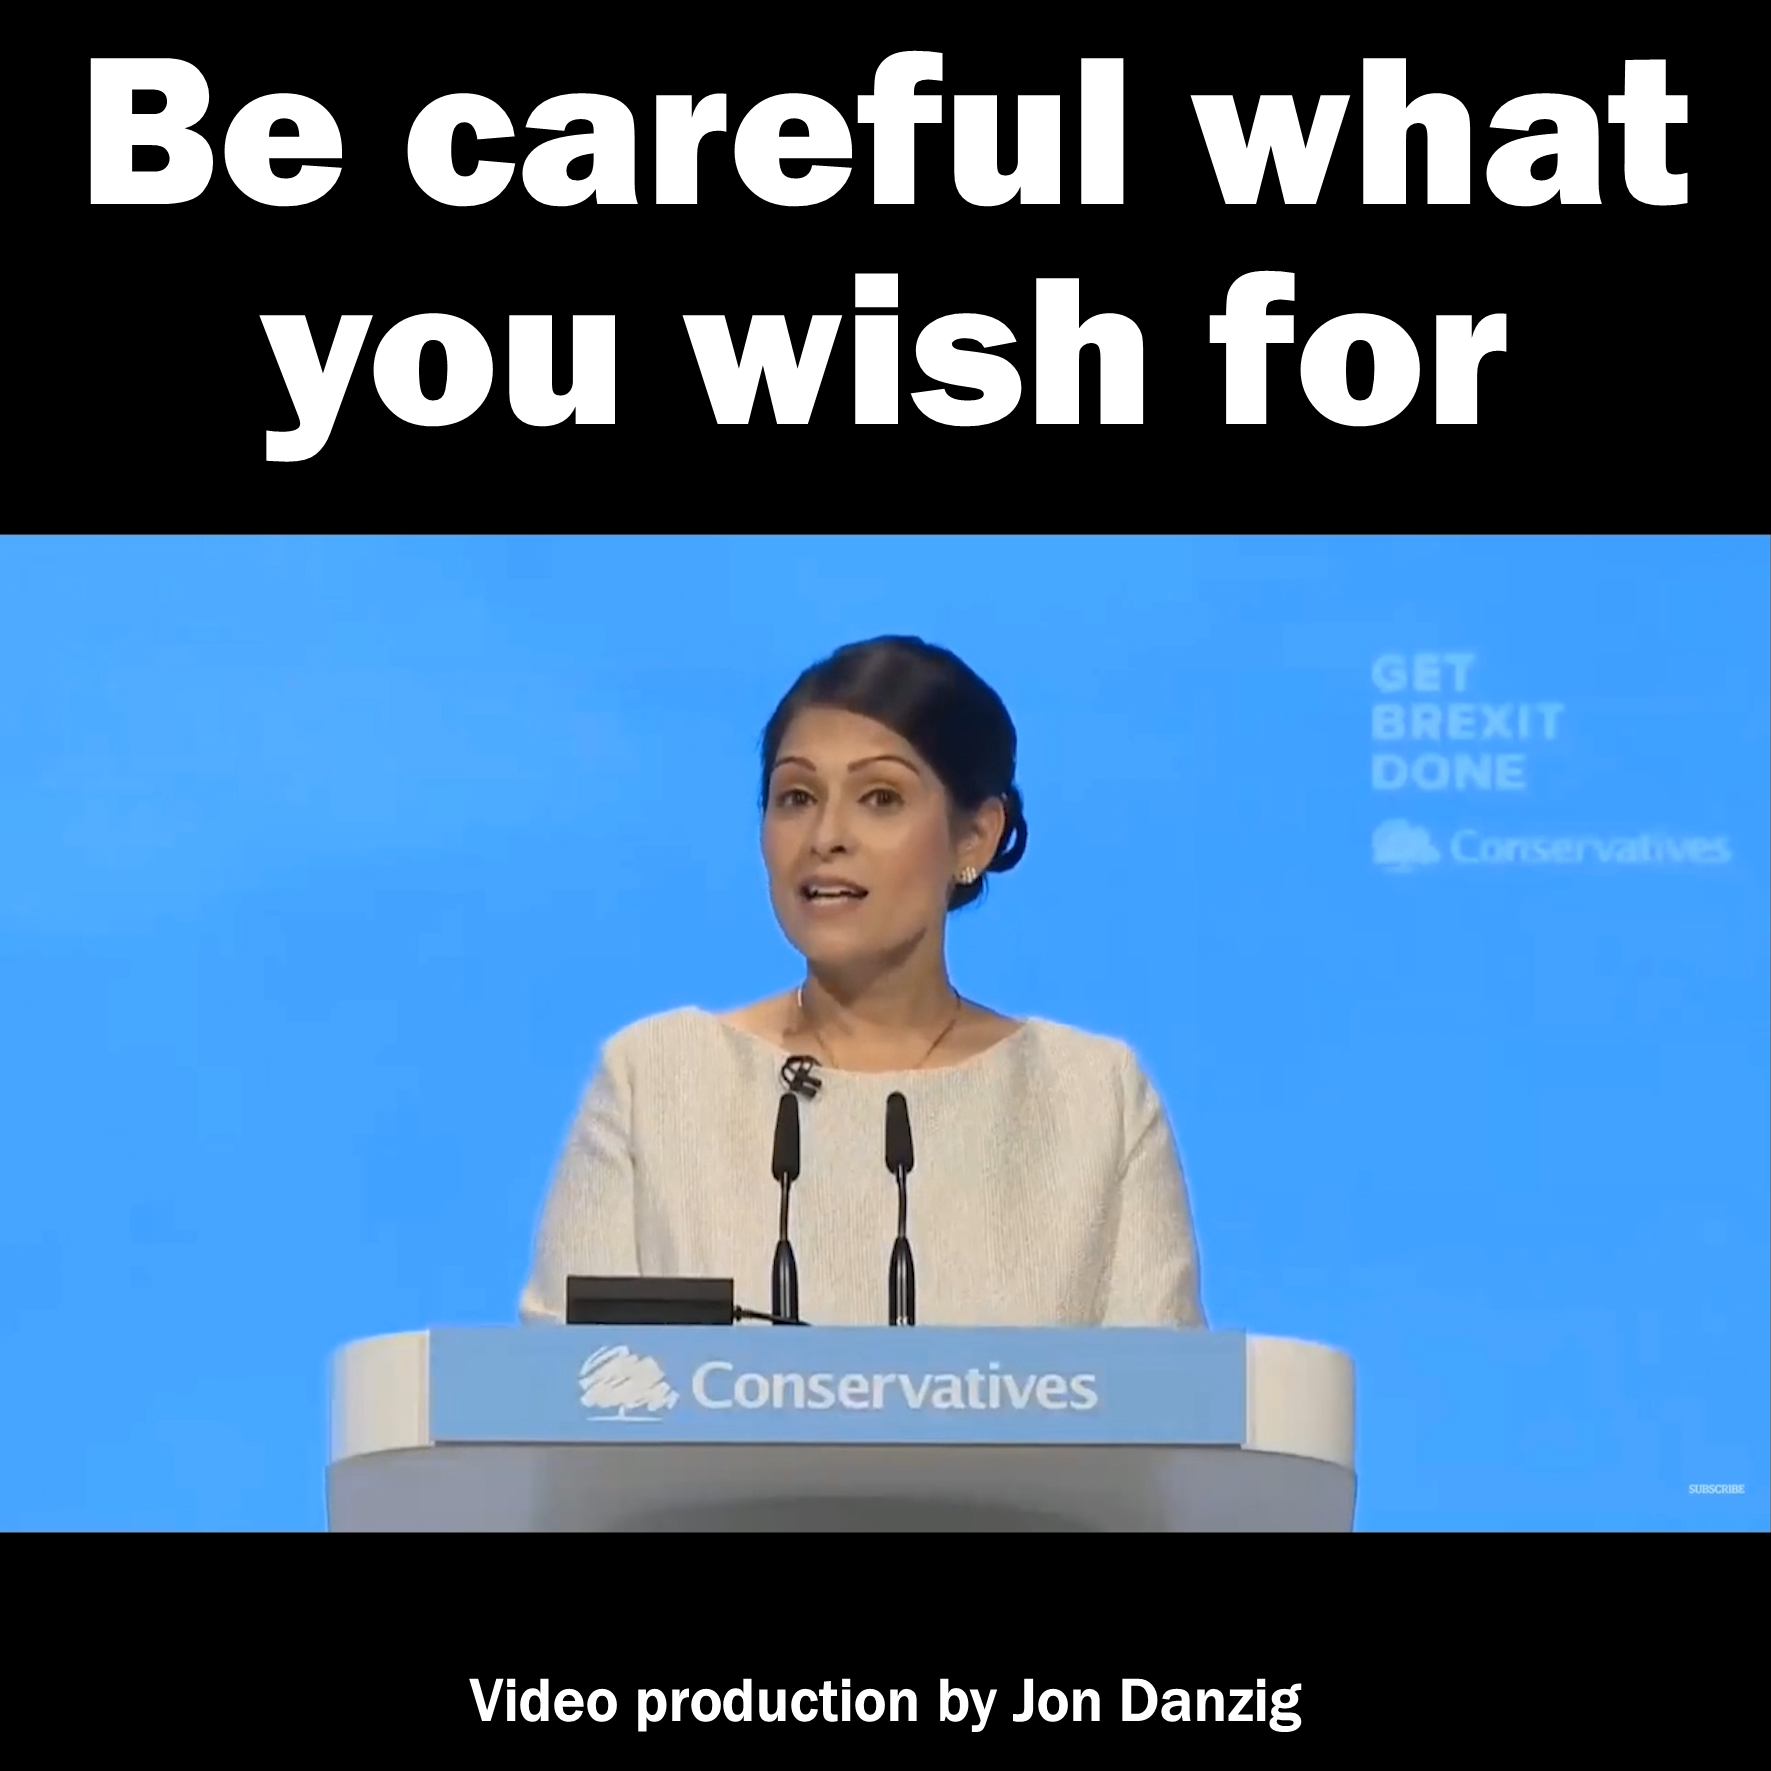 Be careful what you wish for, Priti Patel